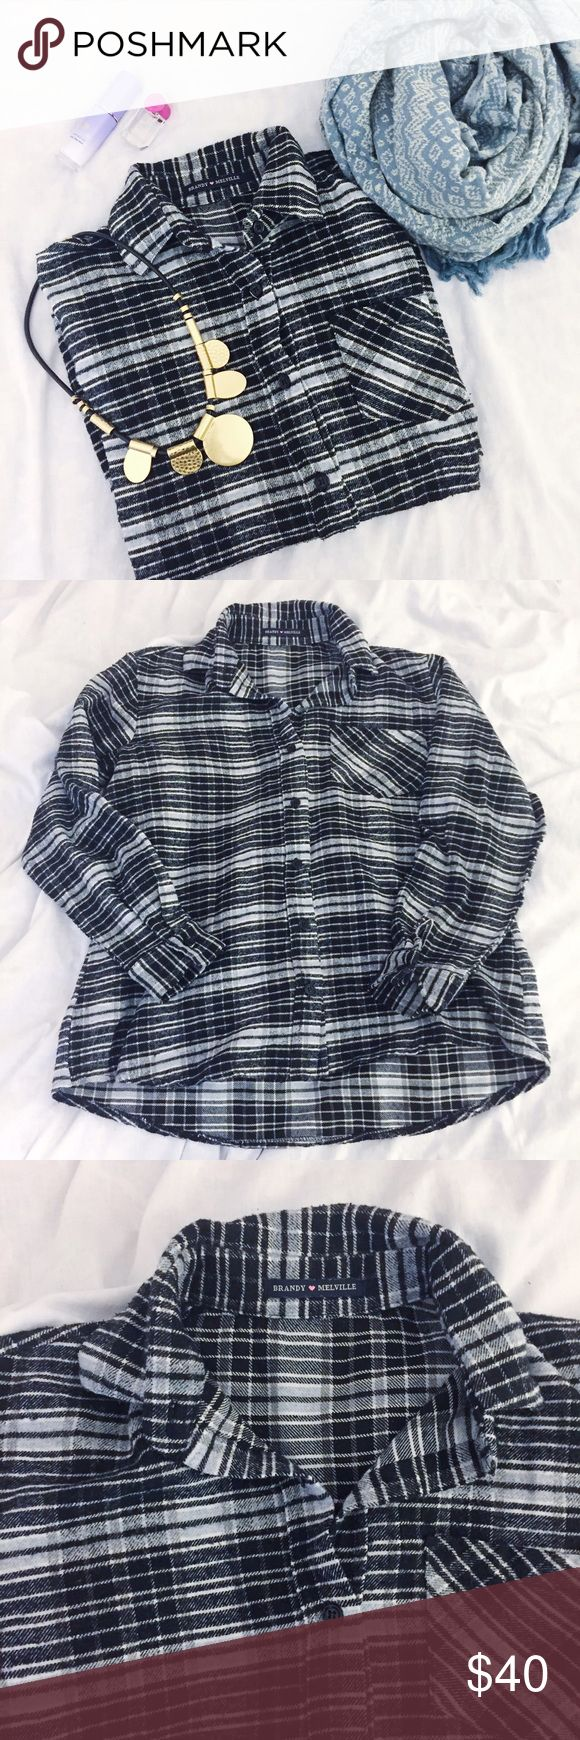 Brandy Melville Flannel Button Down ❤️Pre-loved ❤️good condition. Worn a few times. One size Brandy Melville Tops Button Down Shirts